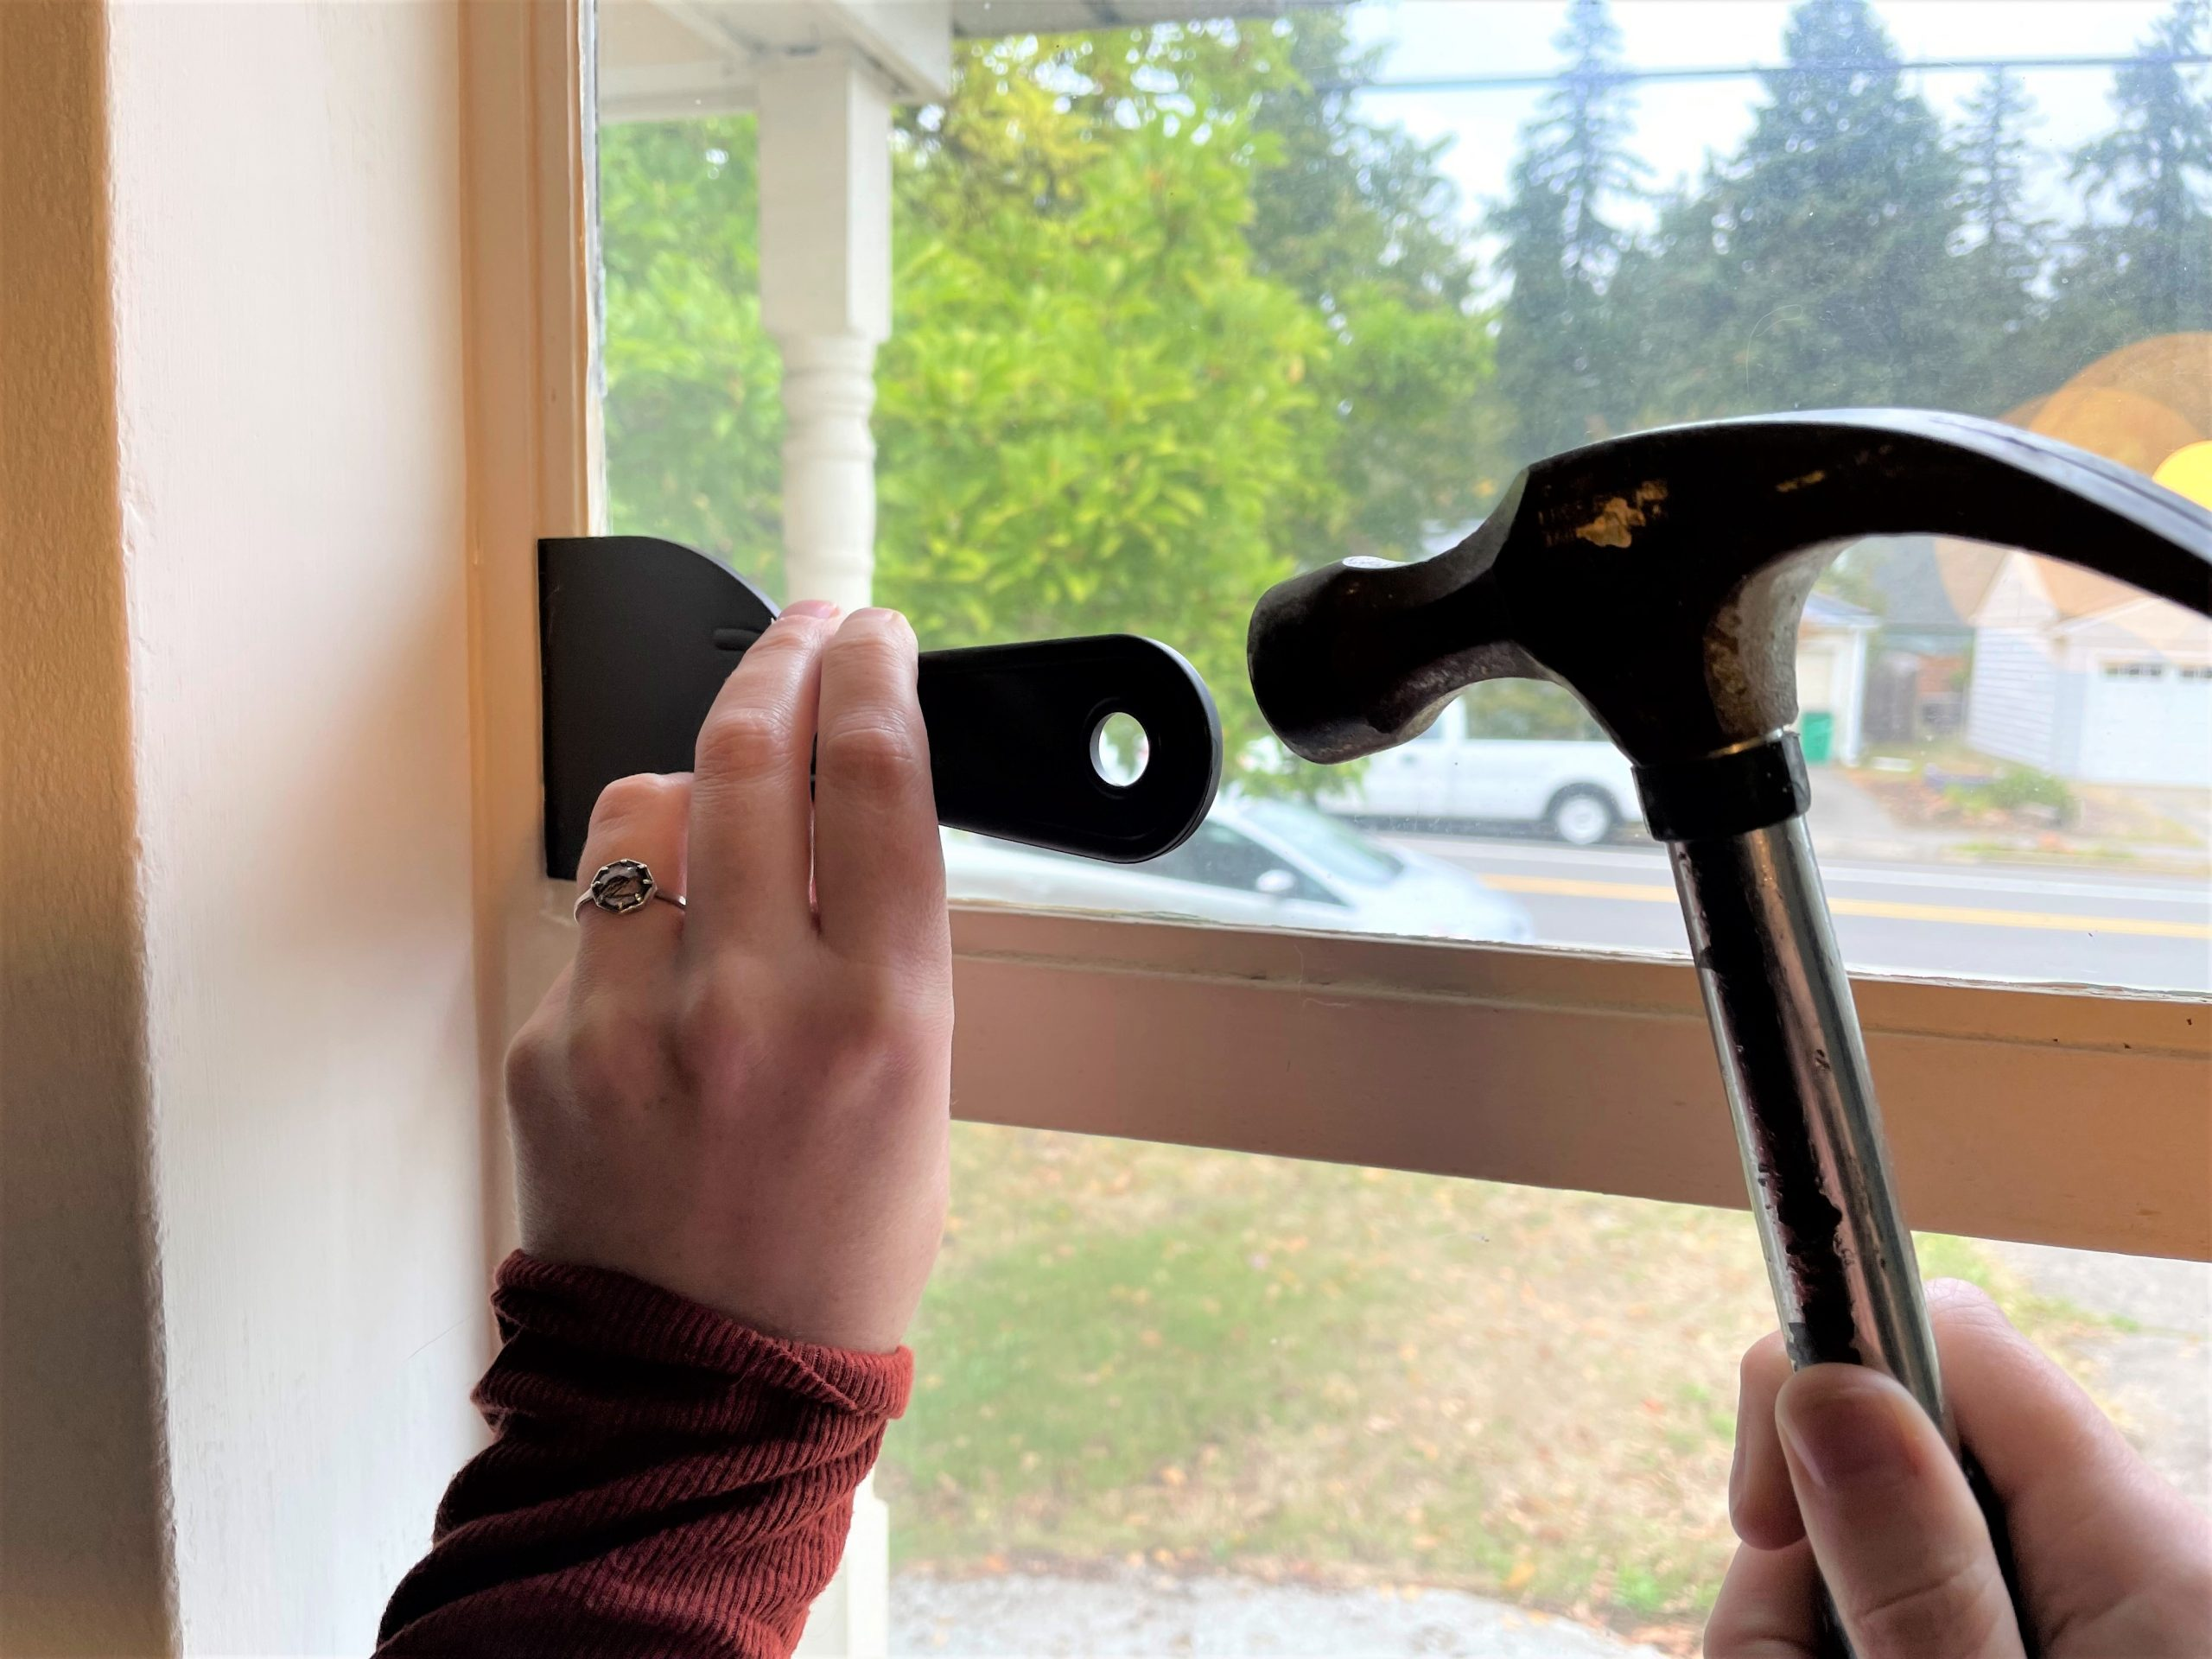 Hammering putty knife in a paint sealed crevice of a window painted shut